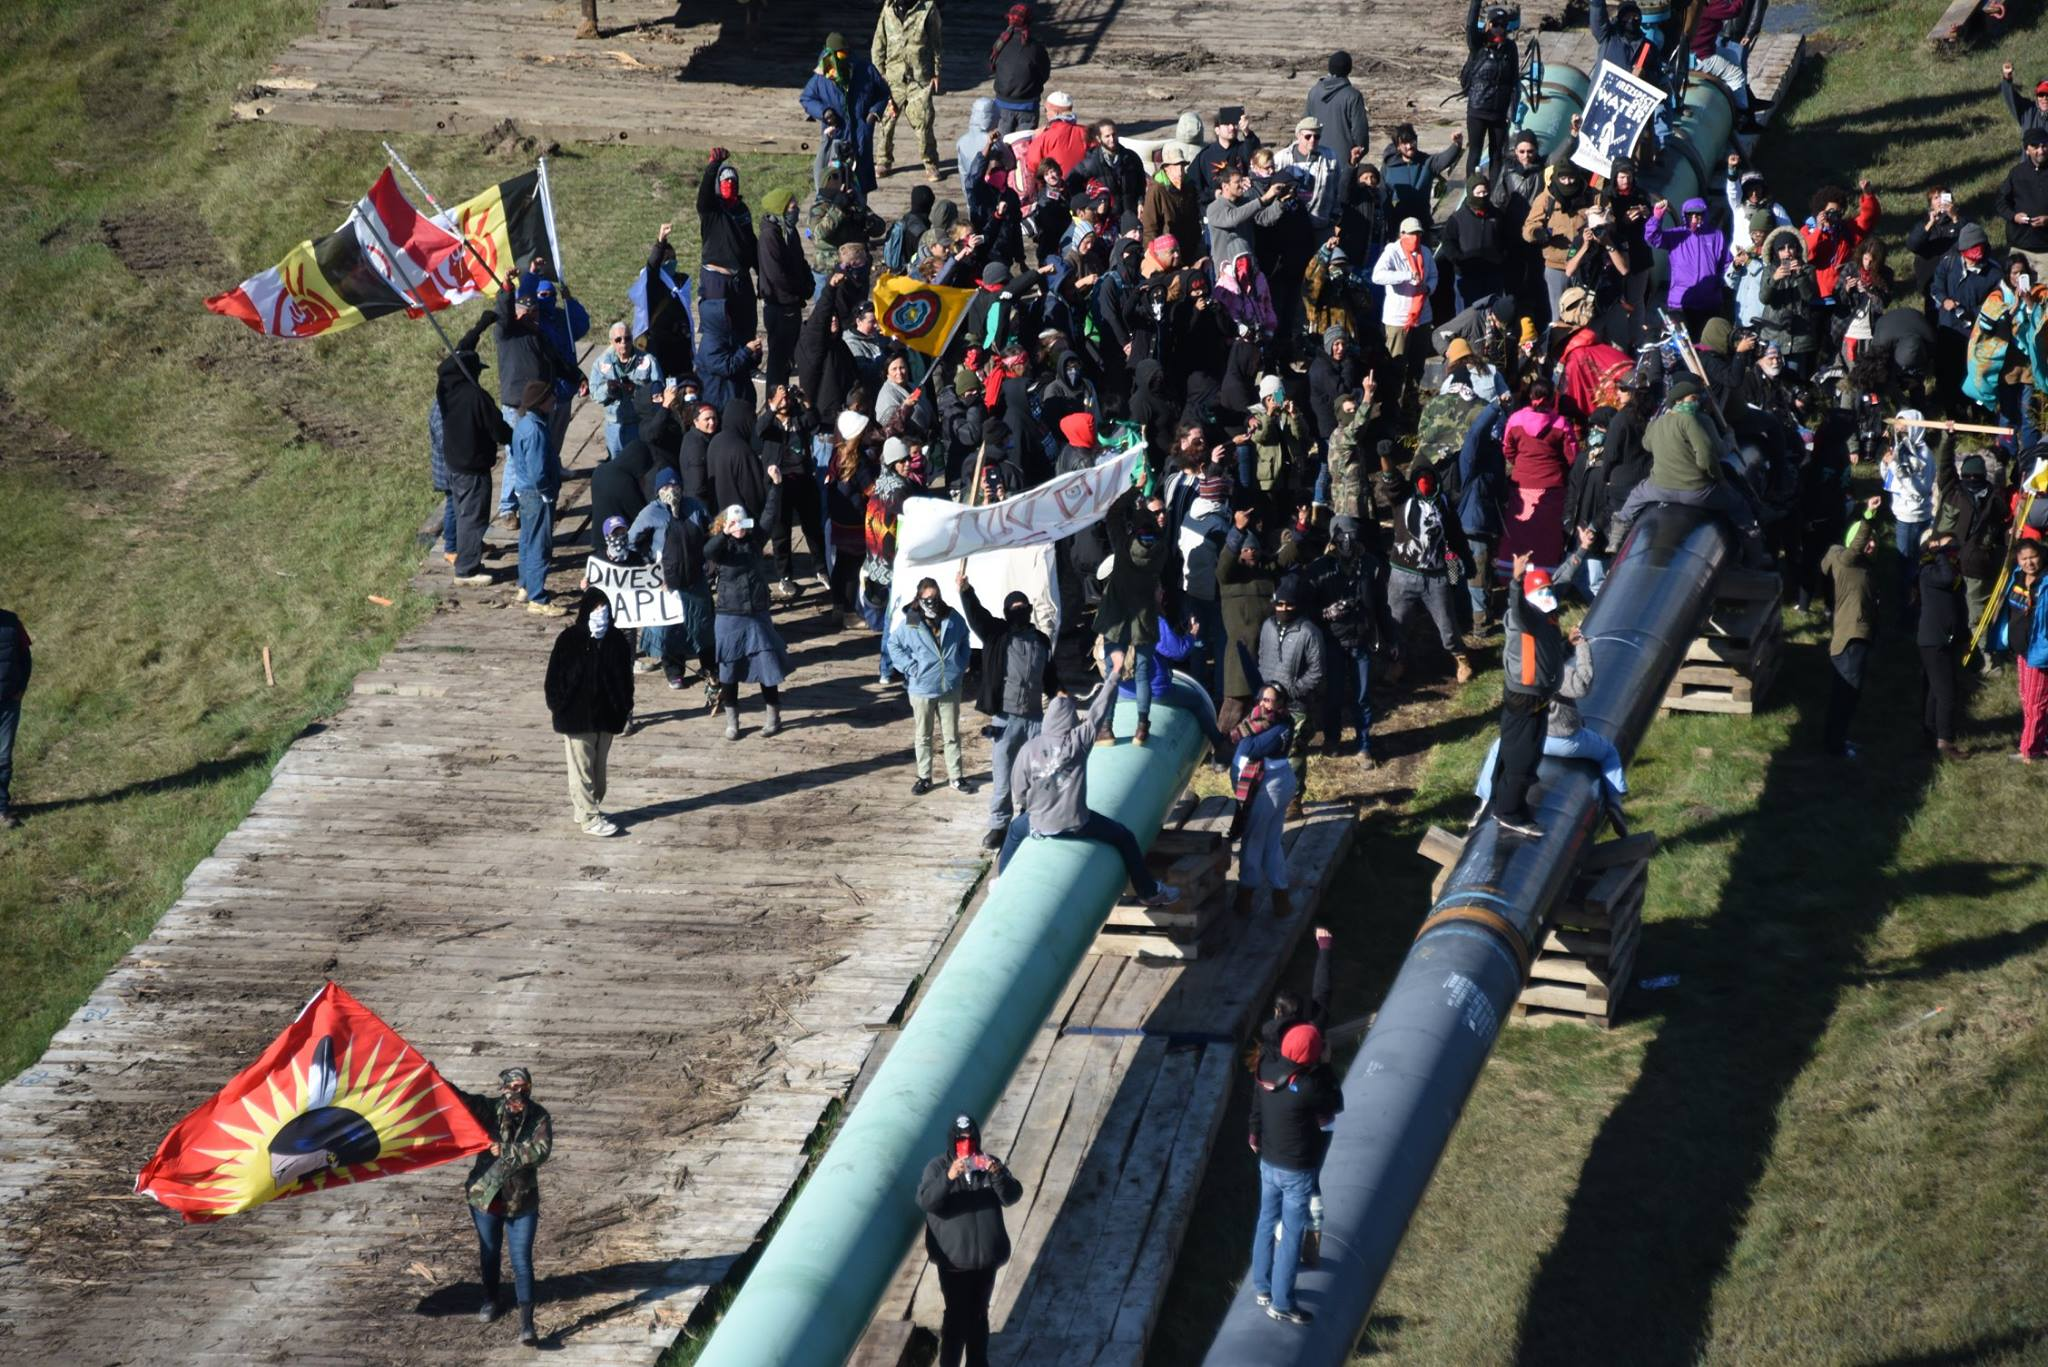 Mary Annette Pember: Sheriff looking into reports of 'gunshots' fired at #NoDAPL gatherings